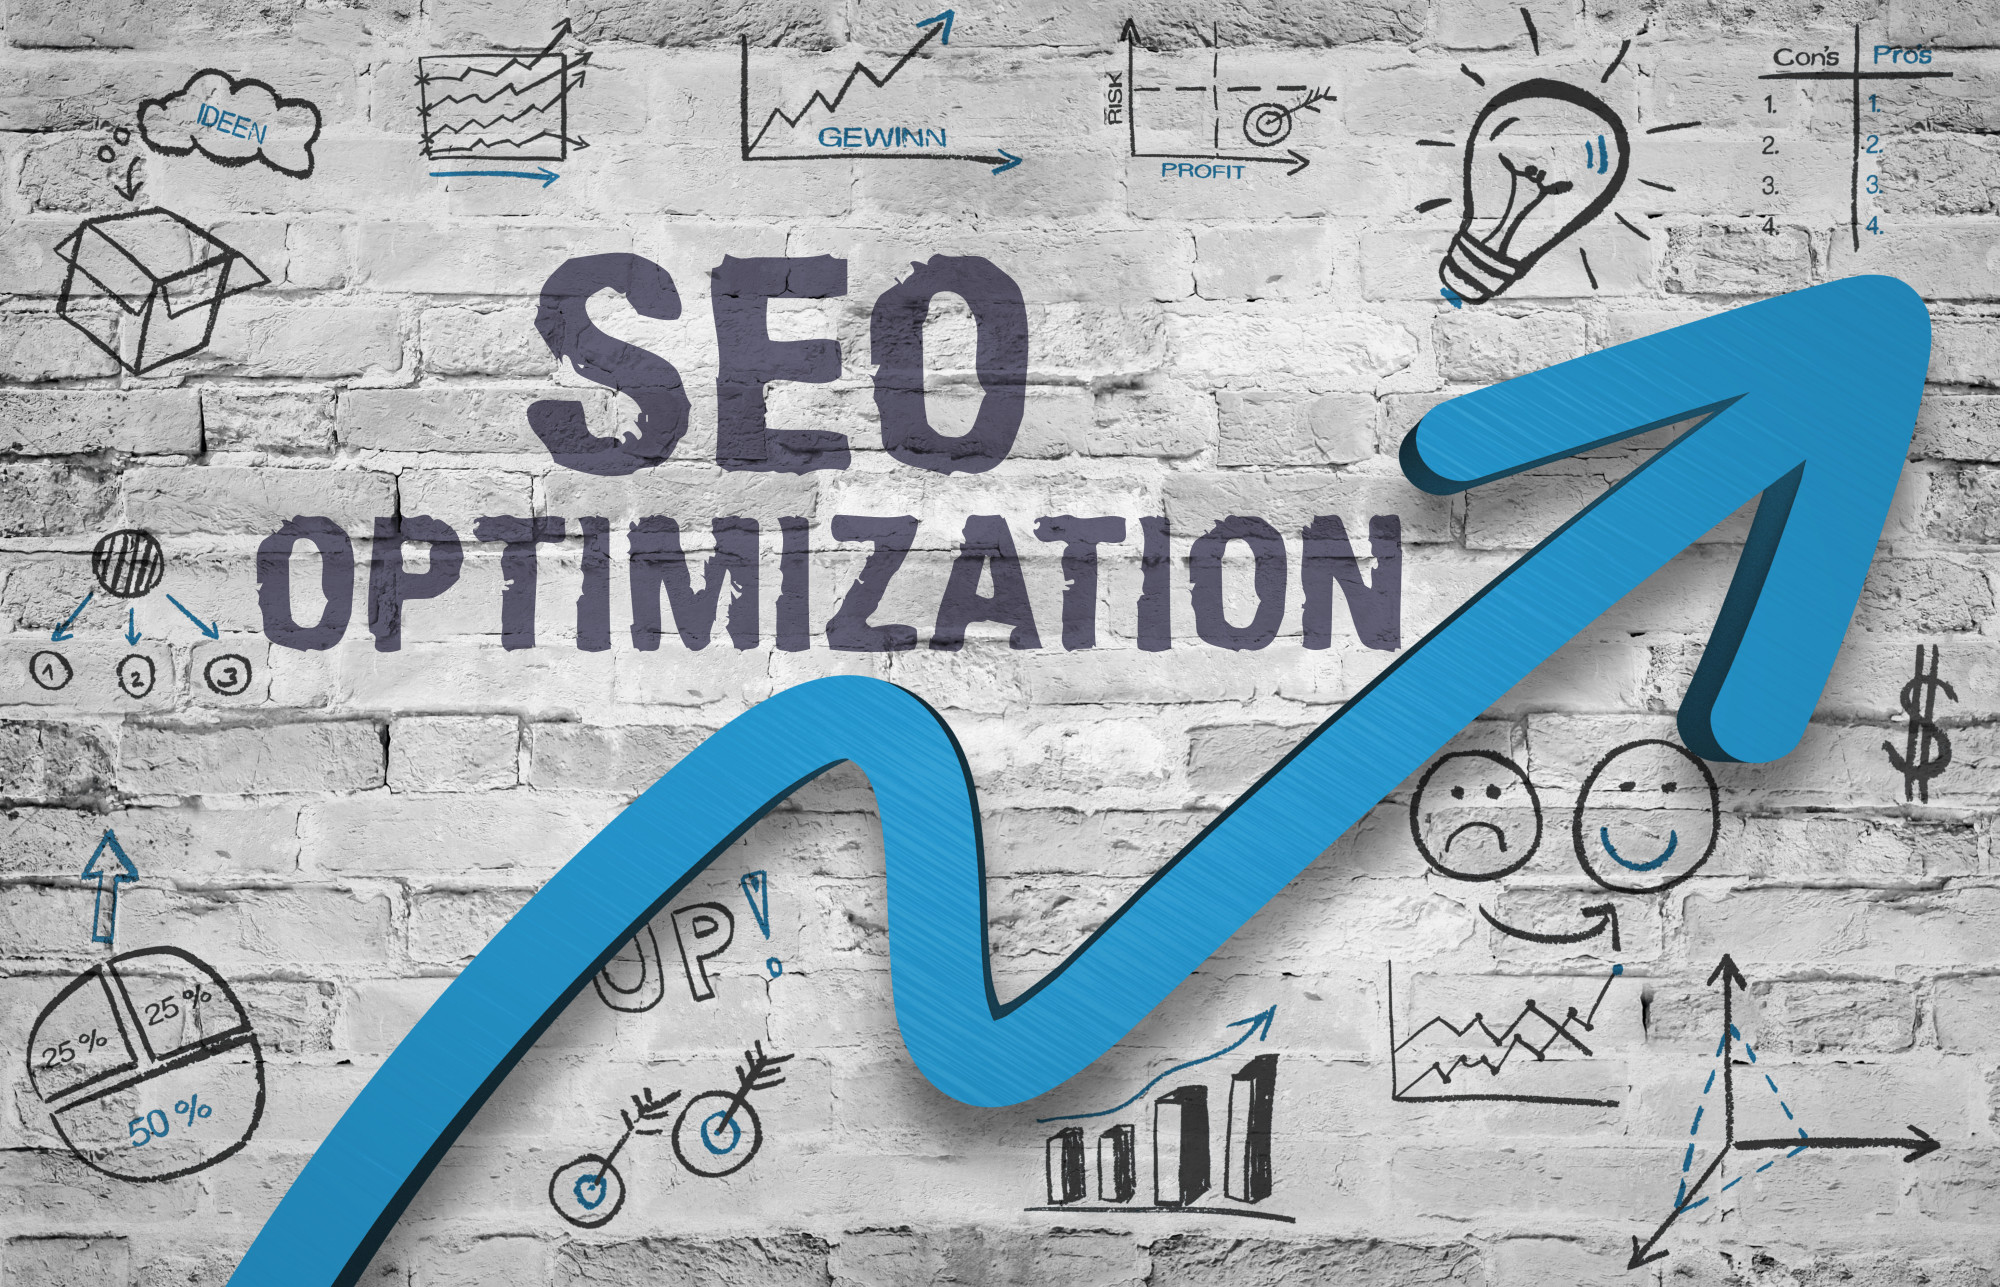 seo optimization with arrow